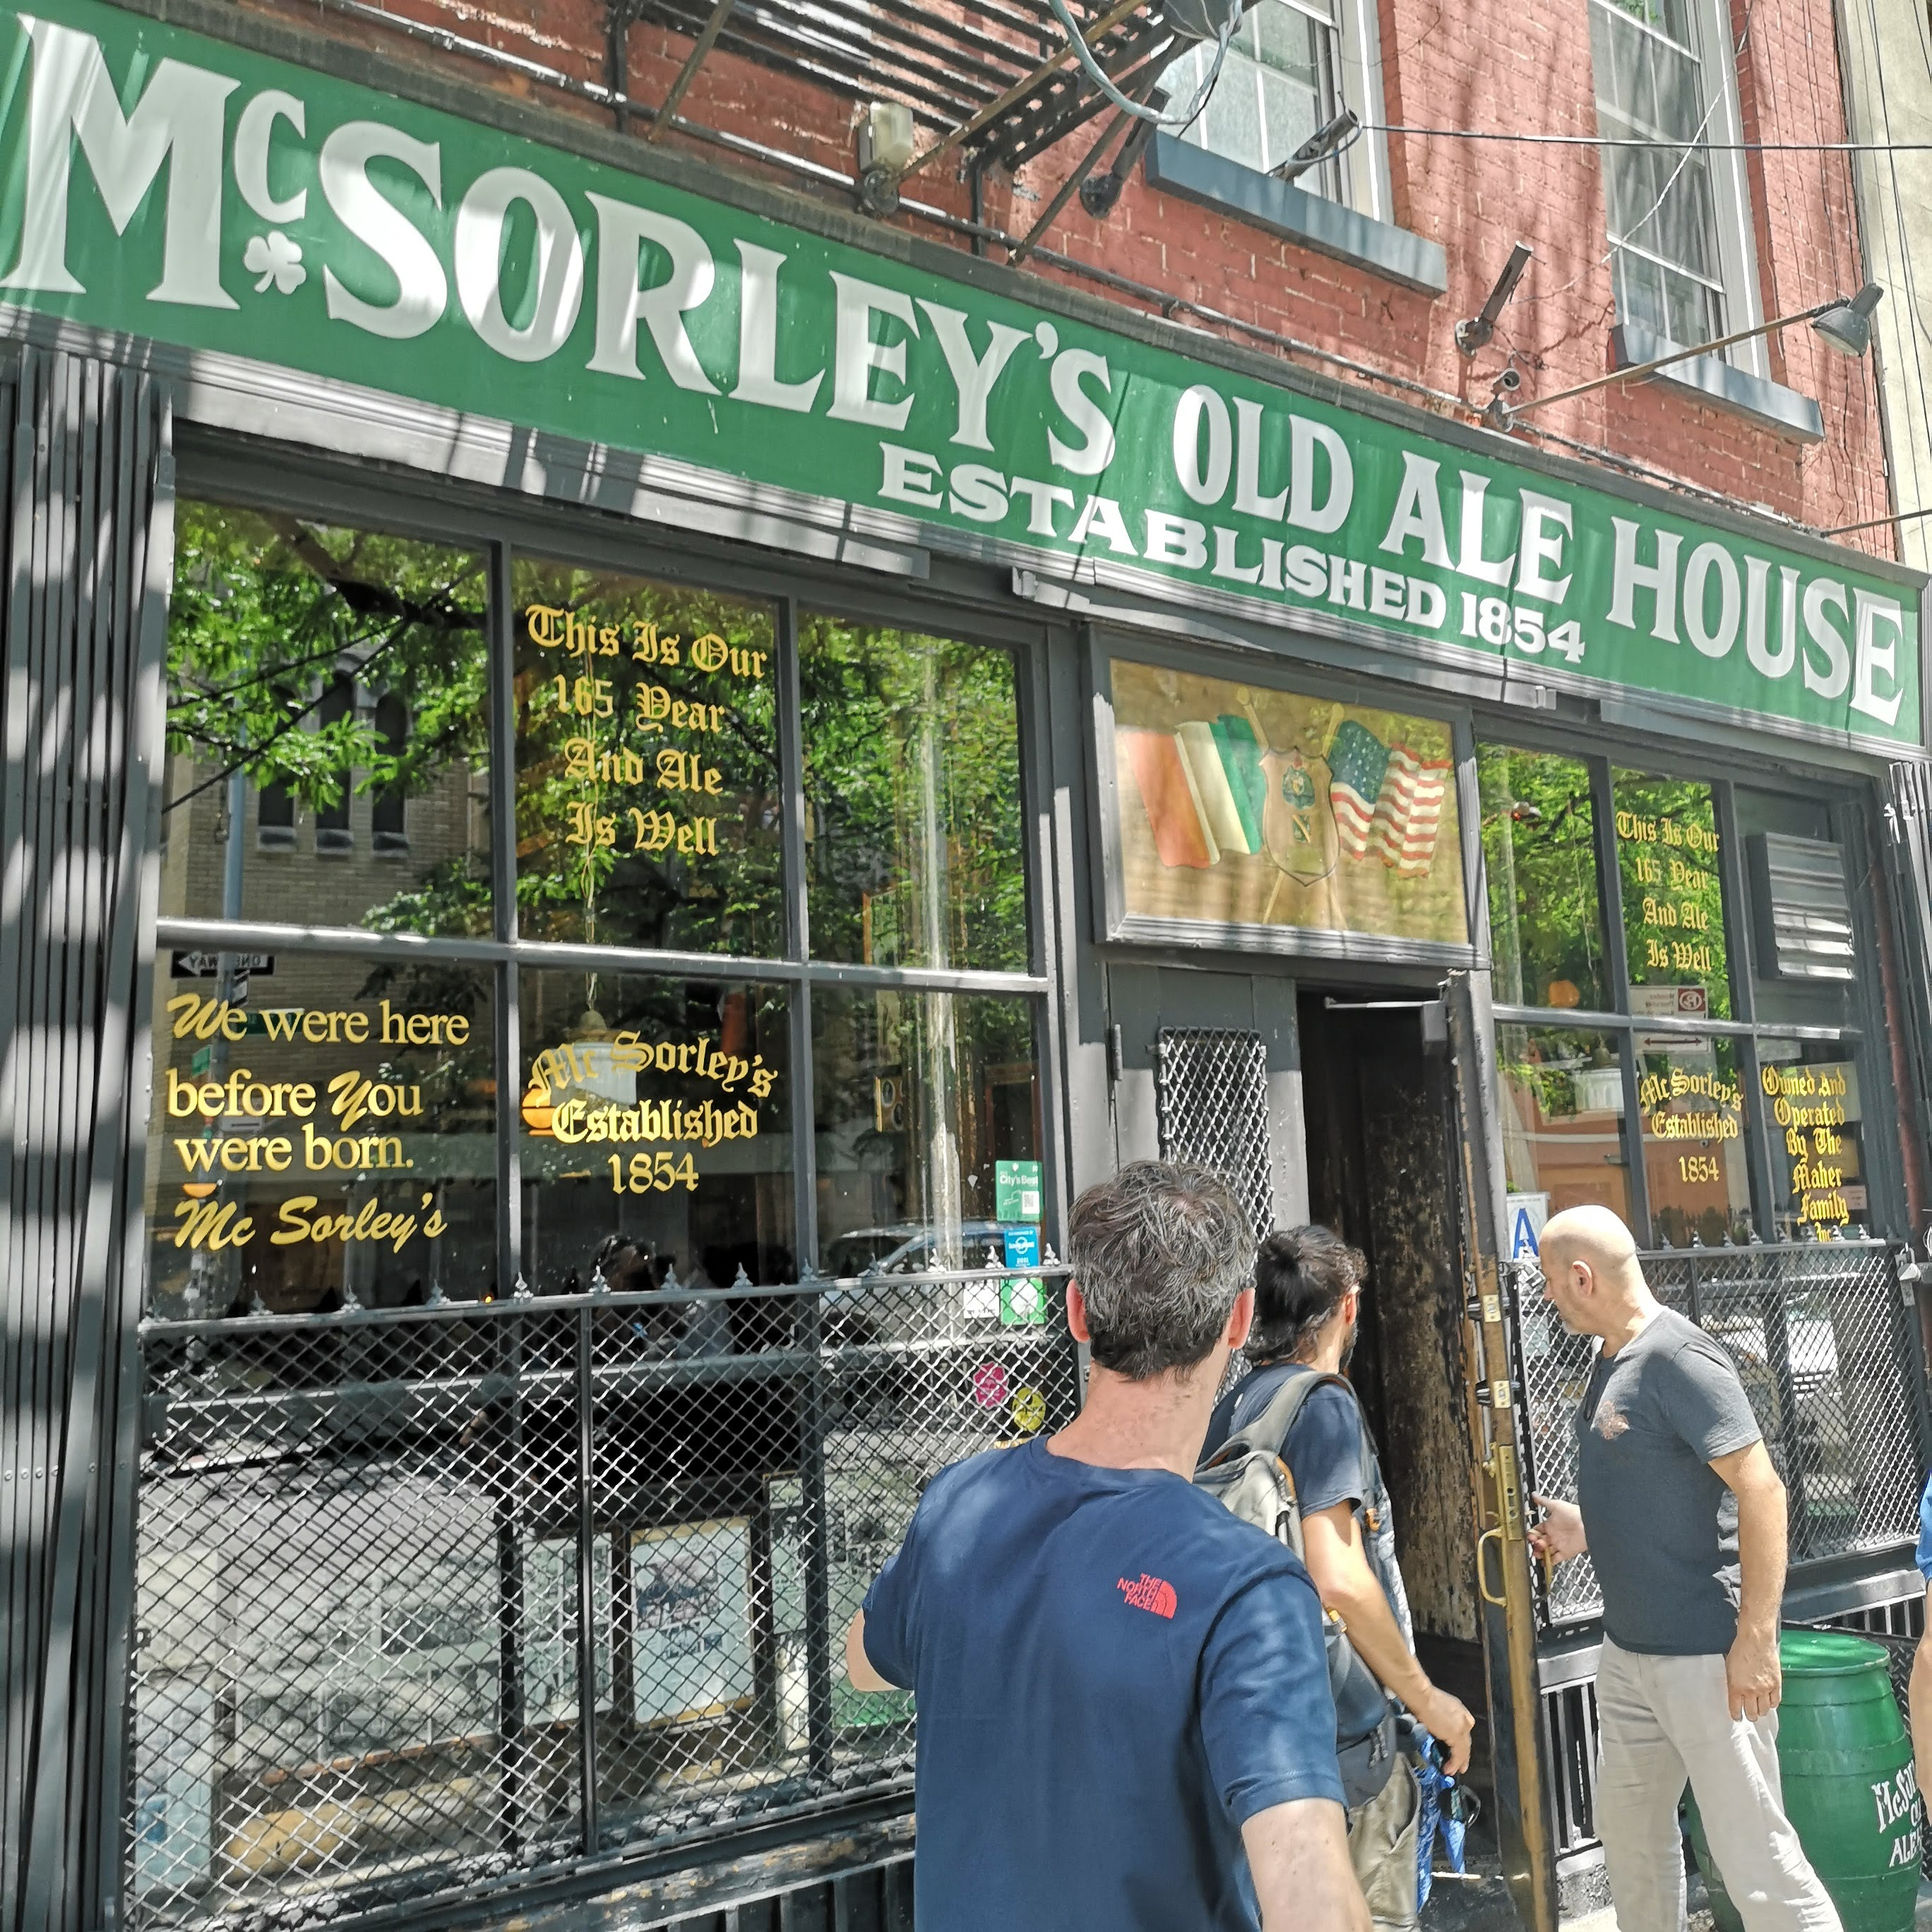 Birra_new_york_city_mc_sorleys_old_ale_house_facciata